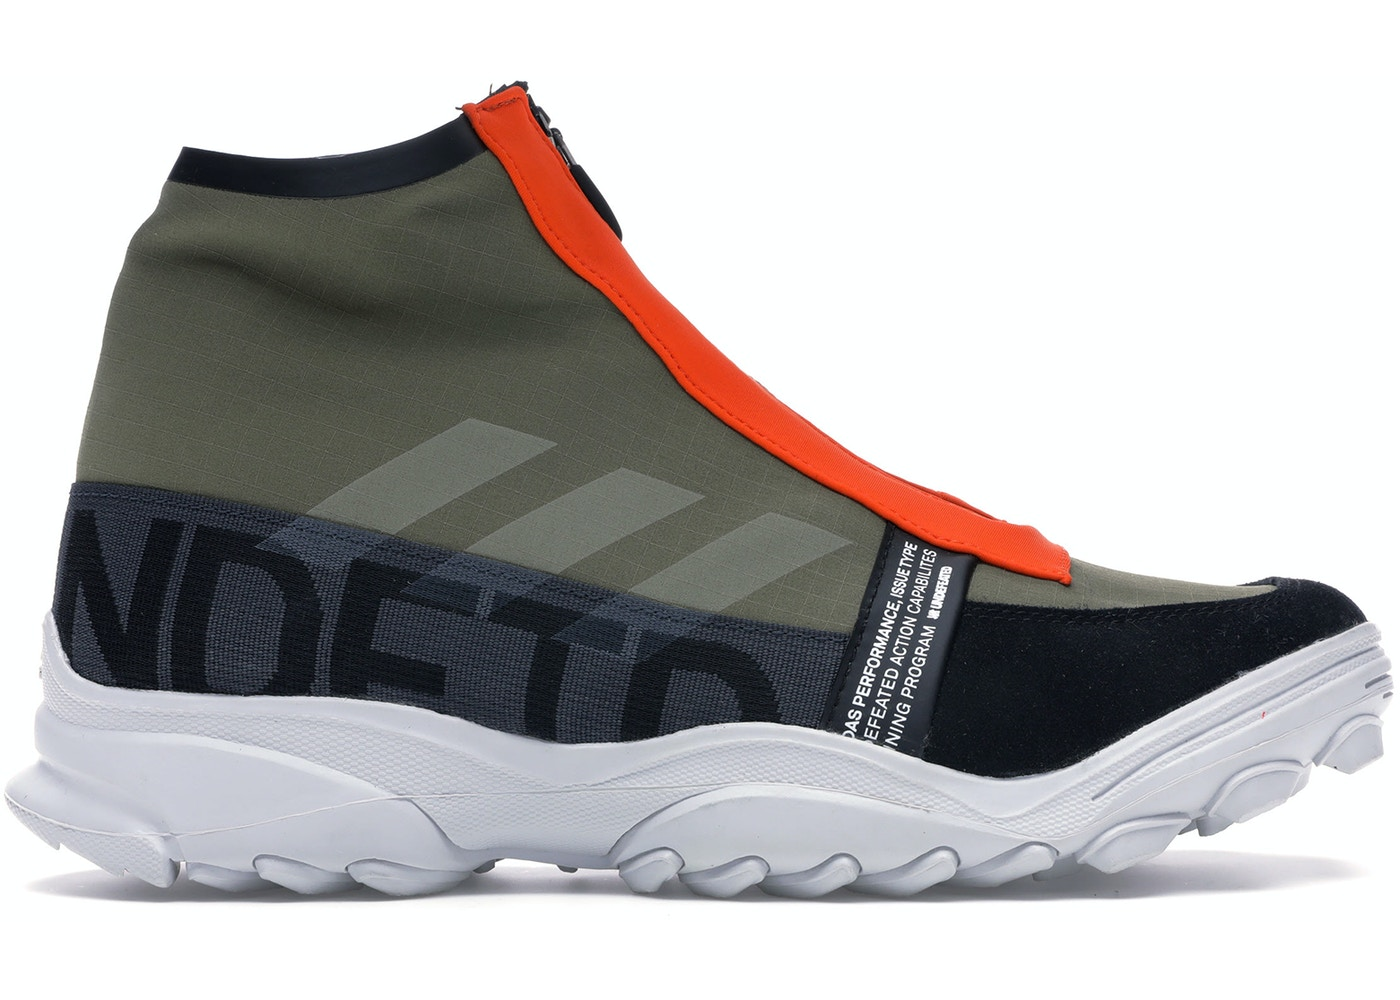 reputable site 25c0f 2051a adidas GSG9 Undefeated